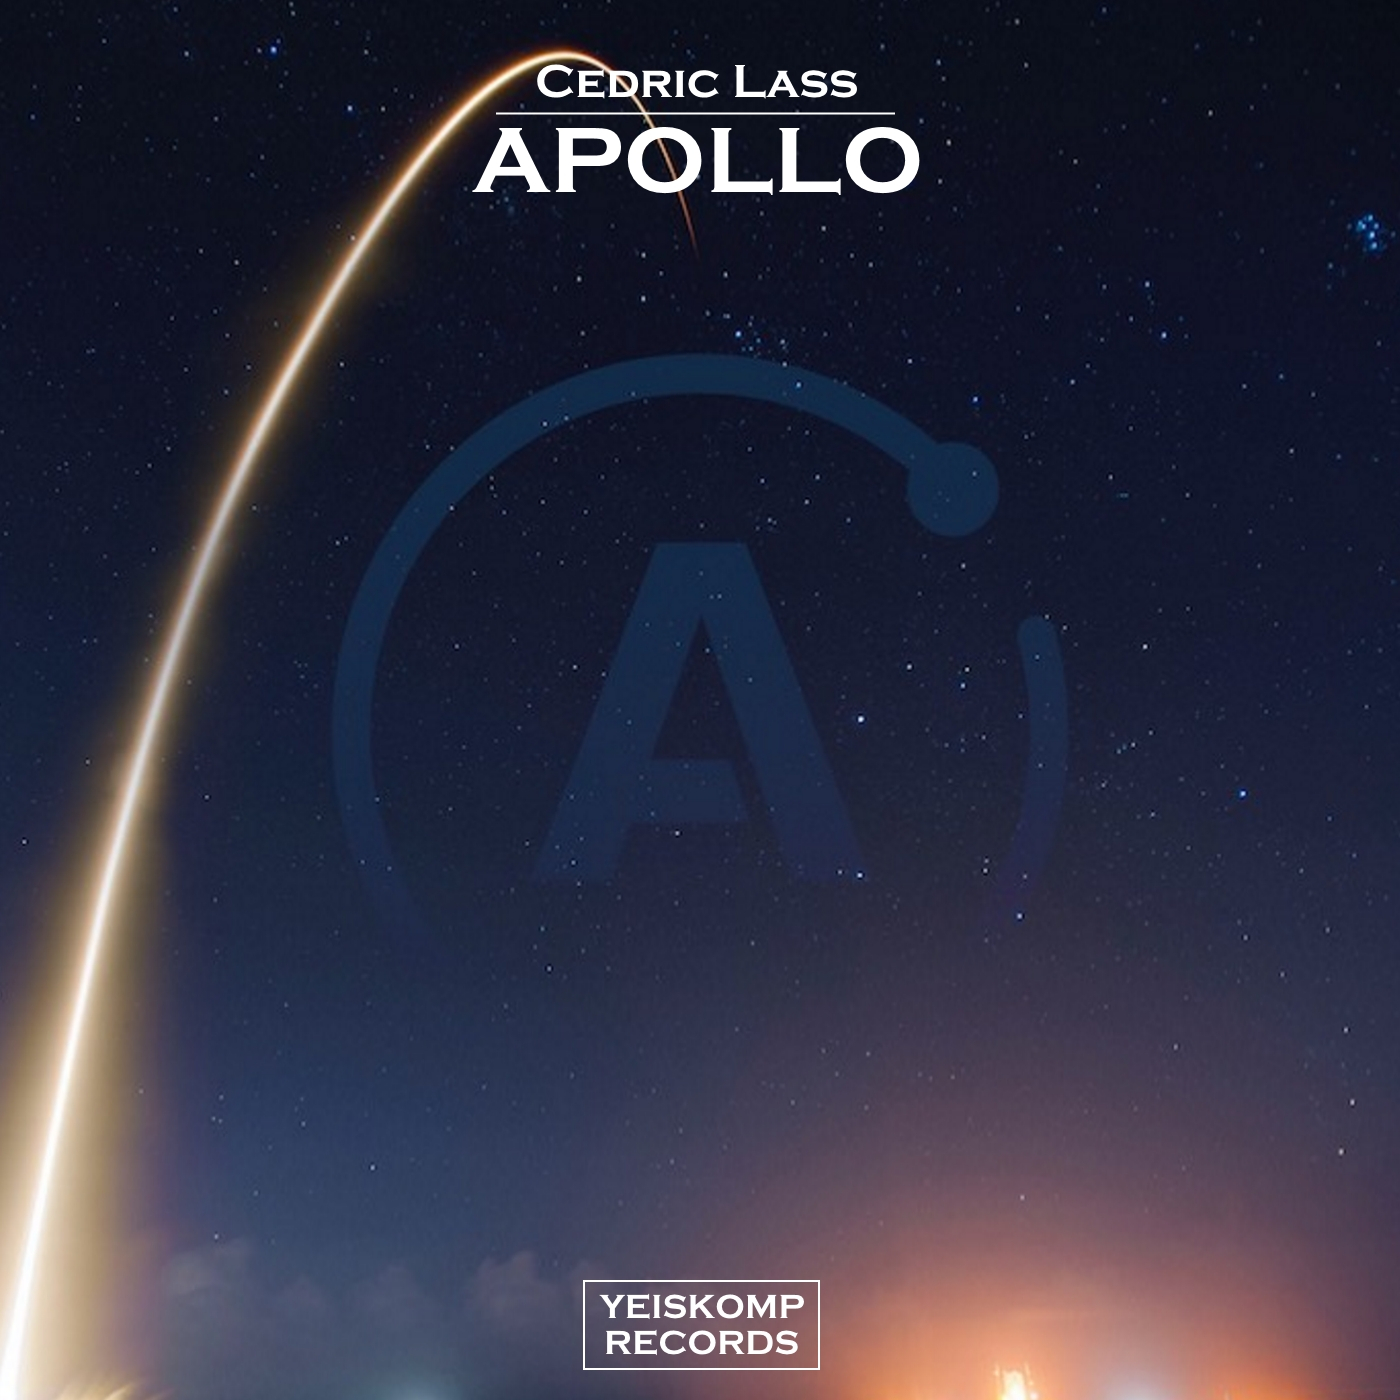 Cedric Lass - Apollo (Extended Mix)